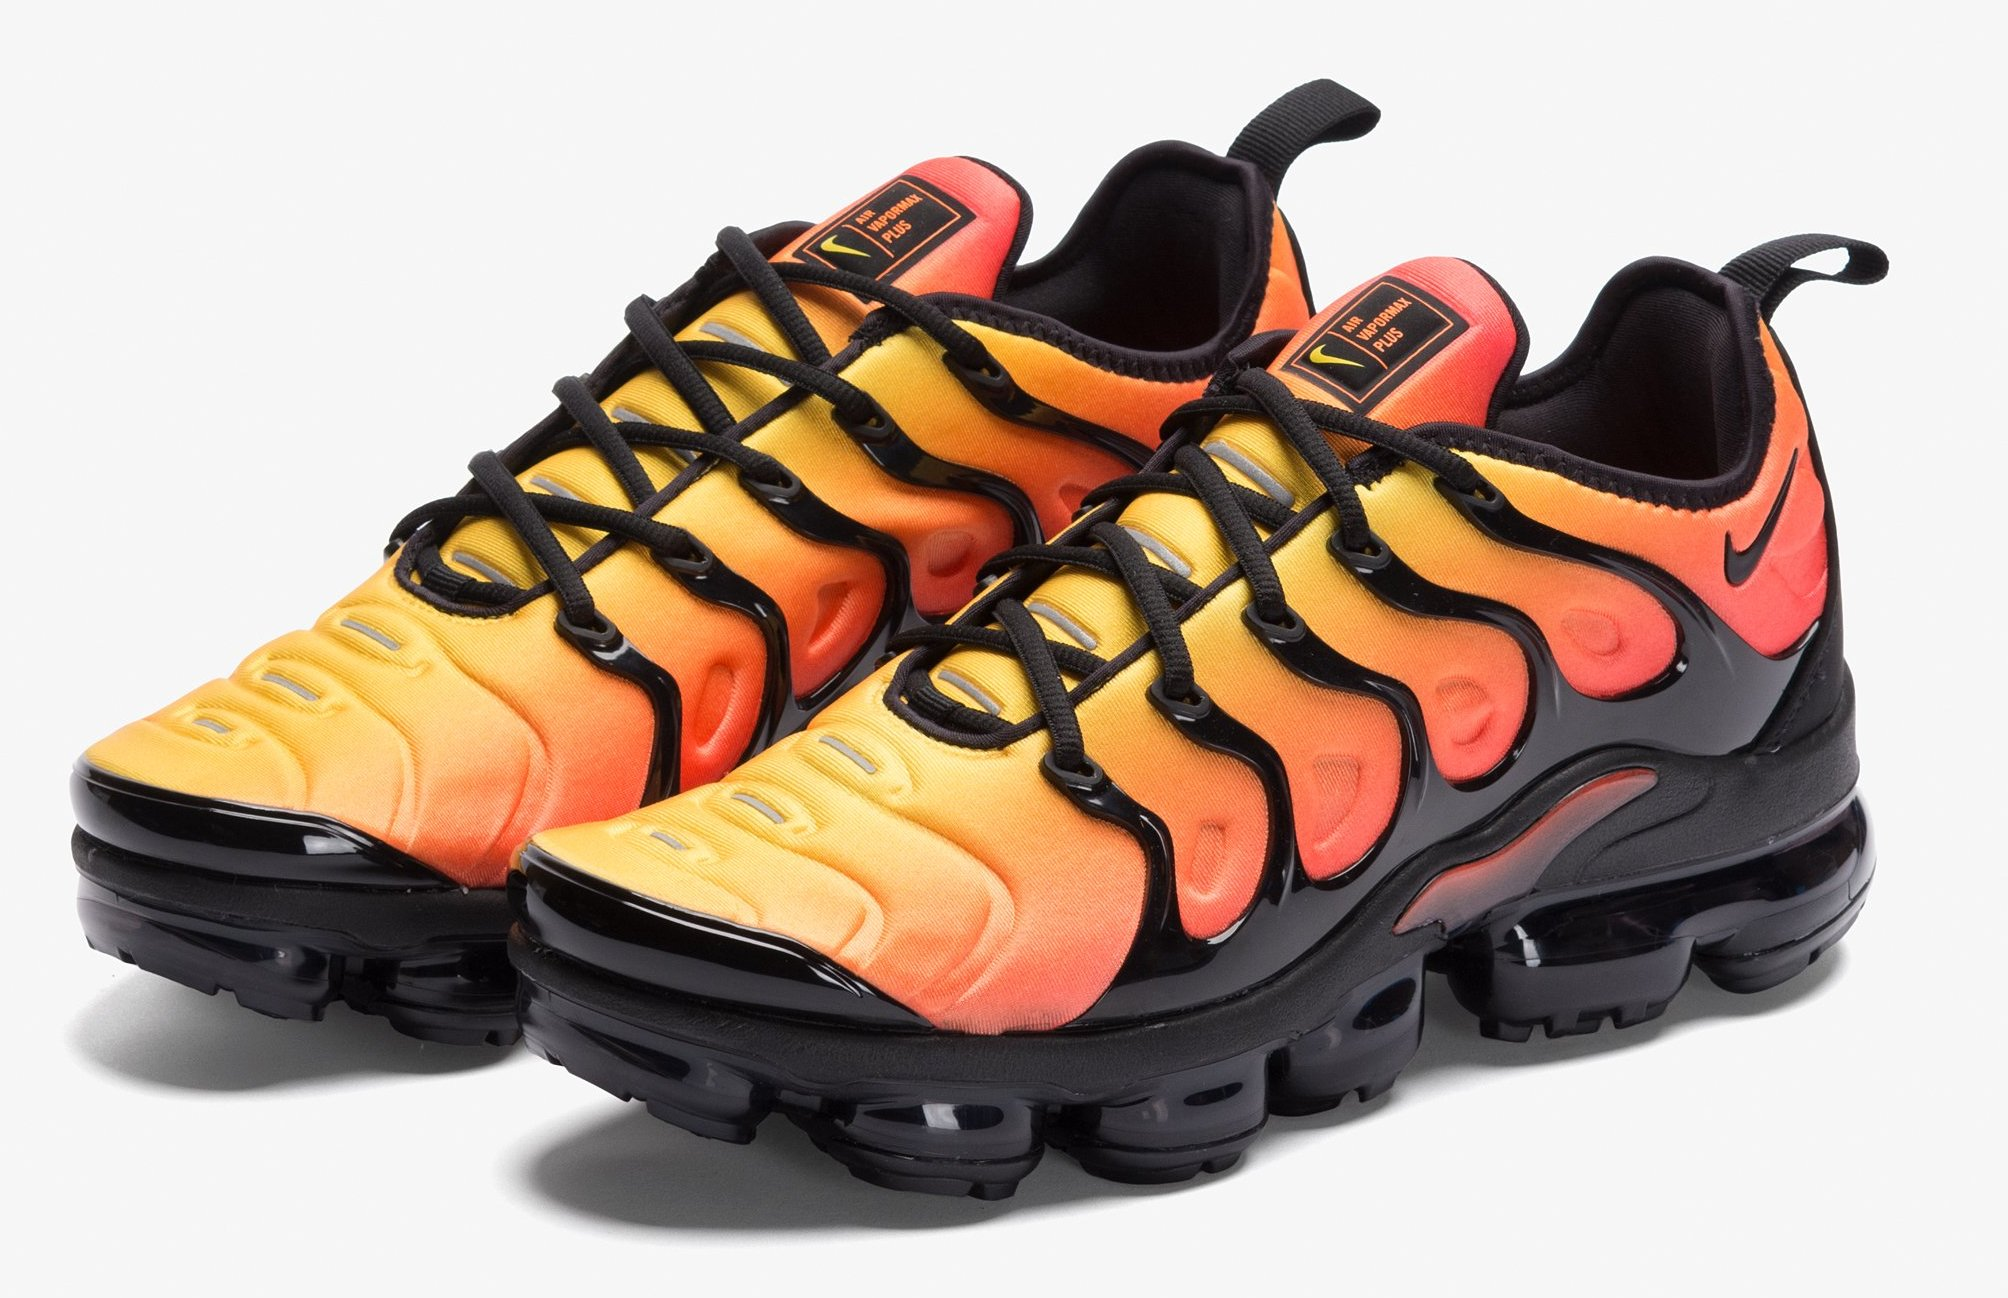 5b5f2ebdf1b ... canada nike vapormax plus sunset black total orange release date sole  collector 8f279 49d96